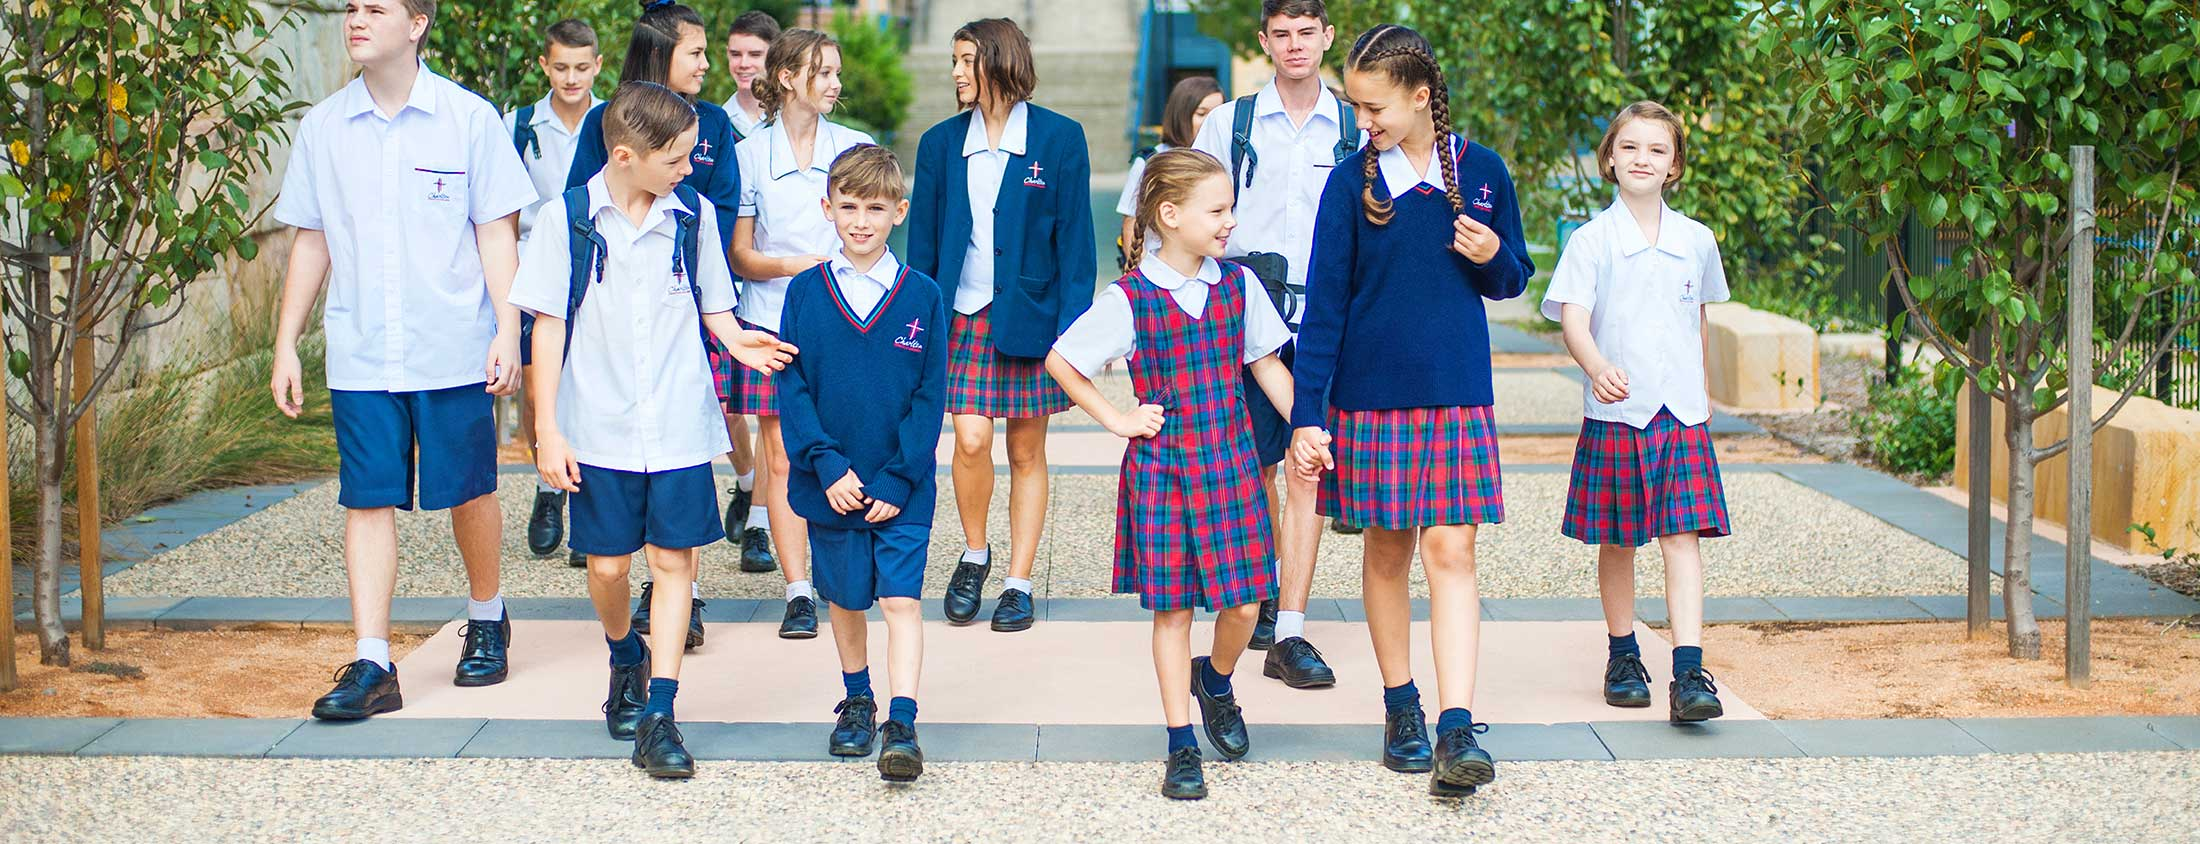 equipping children for life charlton christian college